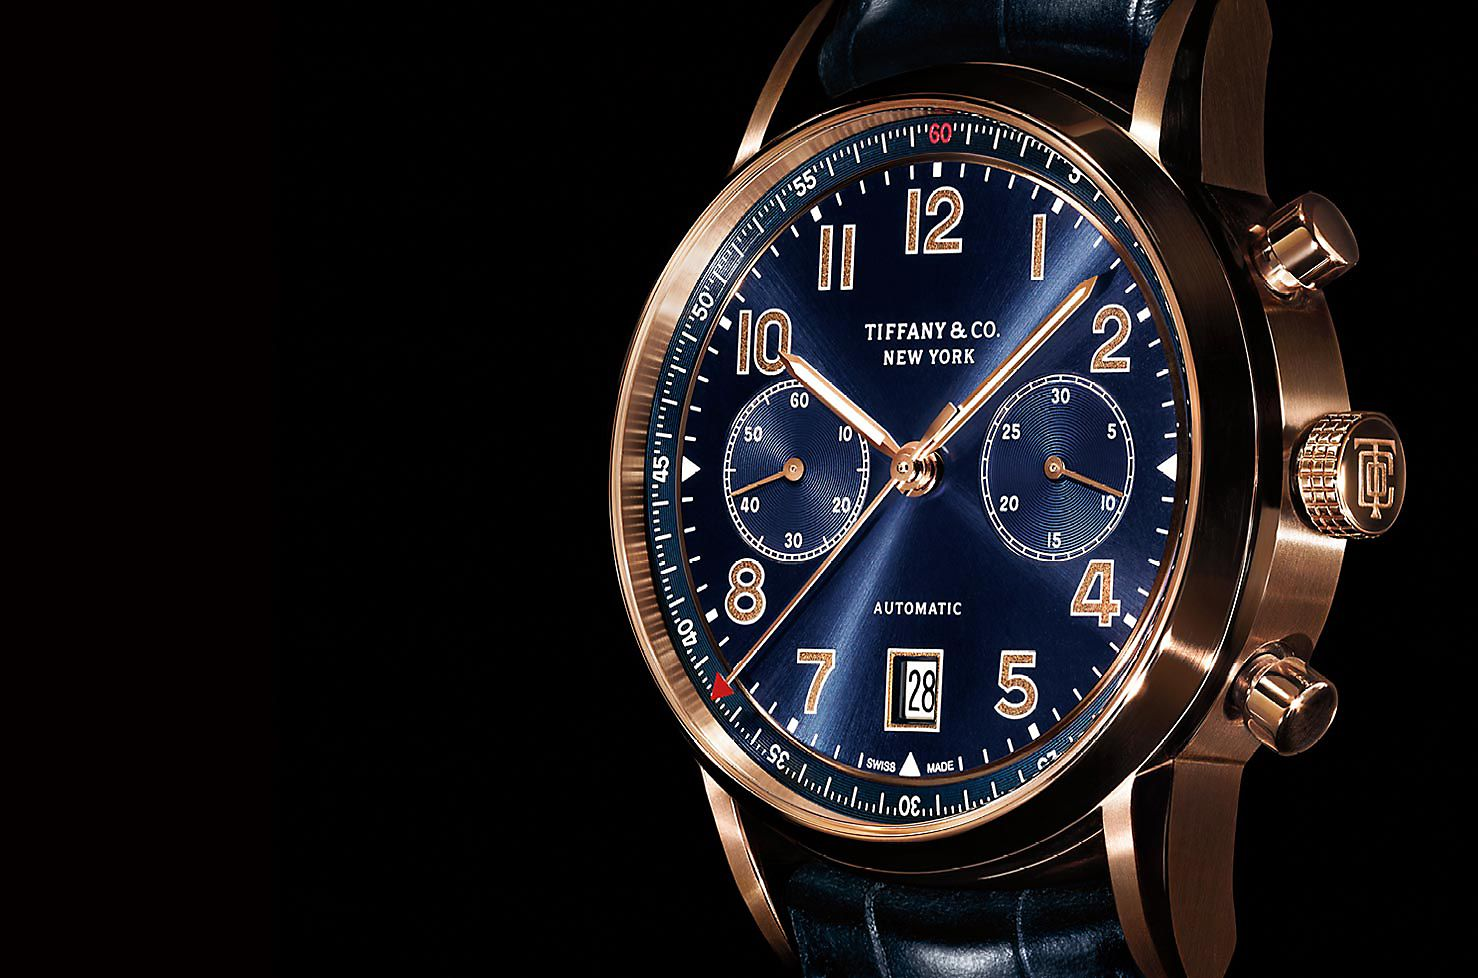 Tiffany CT60 Watches